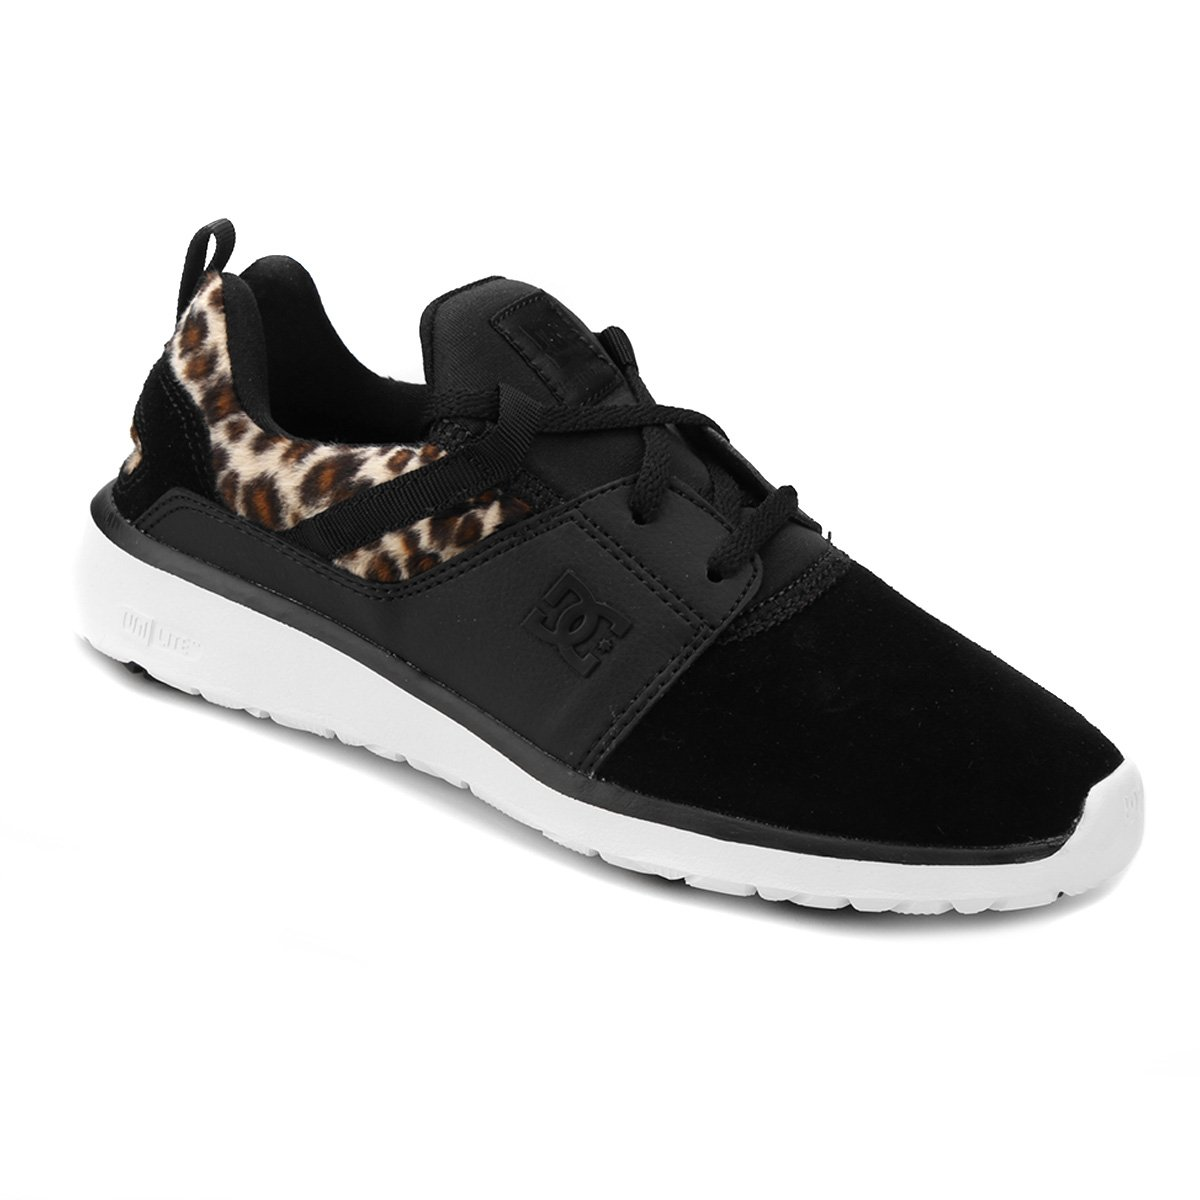 DC Shoes Tênis Preto DC Feminino Tênis Heathrow qHPxEW6wt